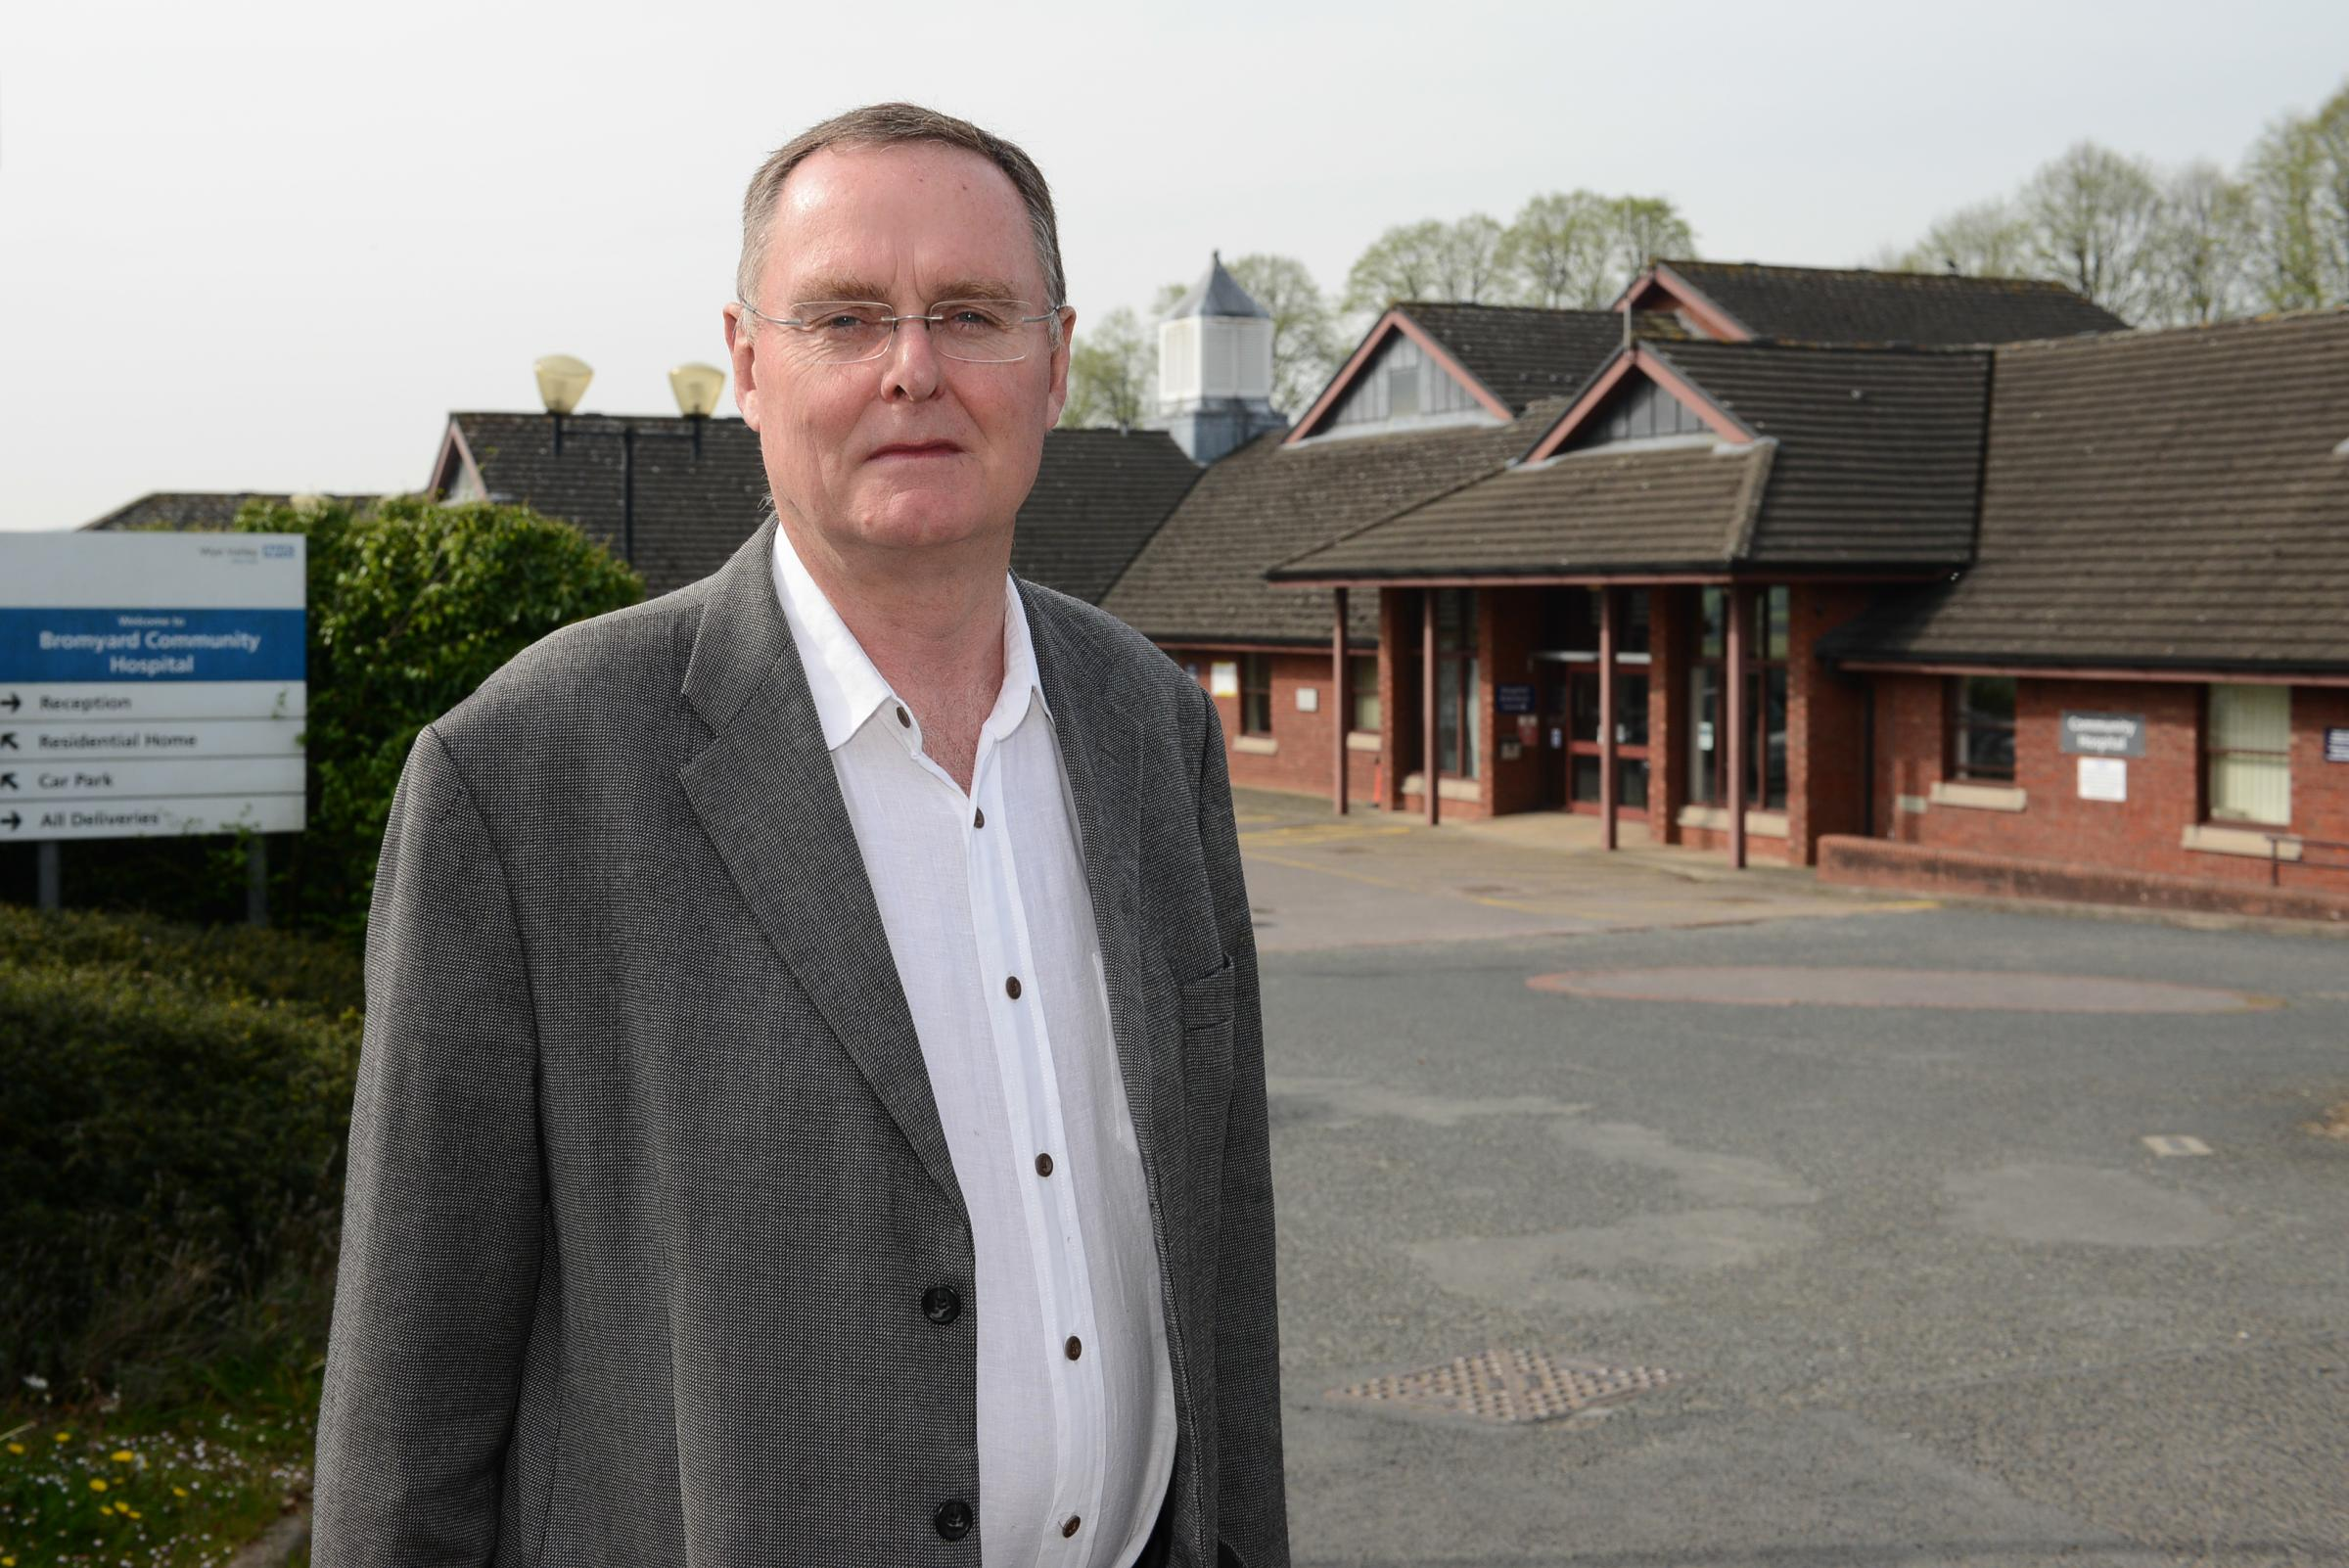 Bromyard county councillor Alan Seldon pictured outside Bromyard Community Hospital.